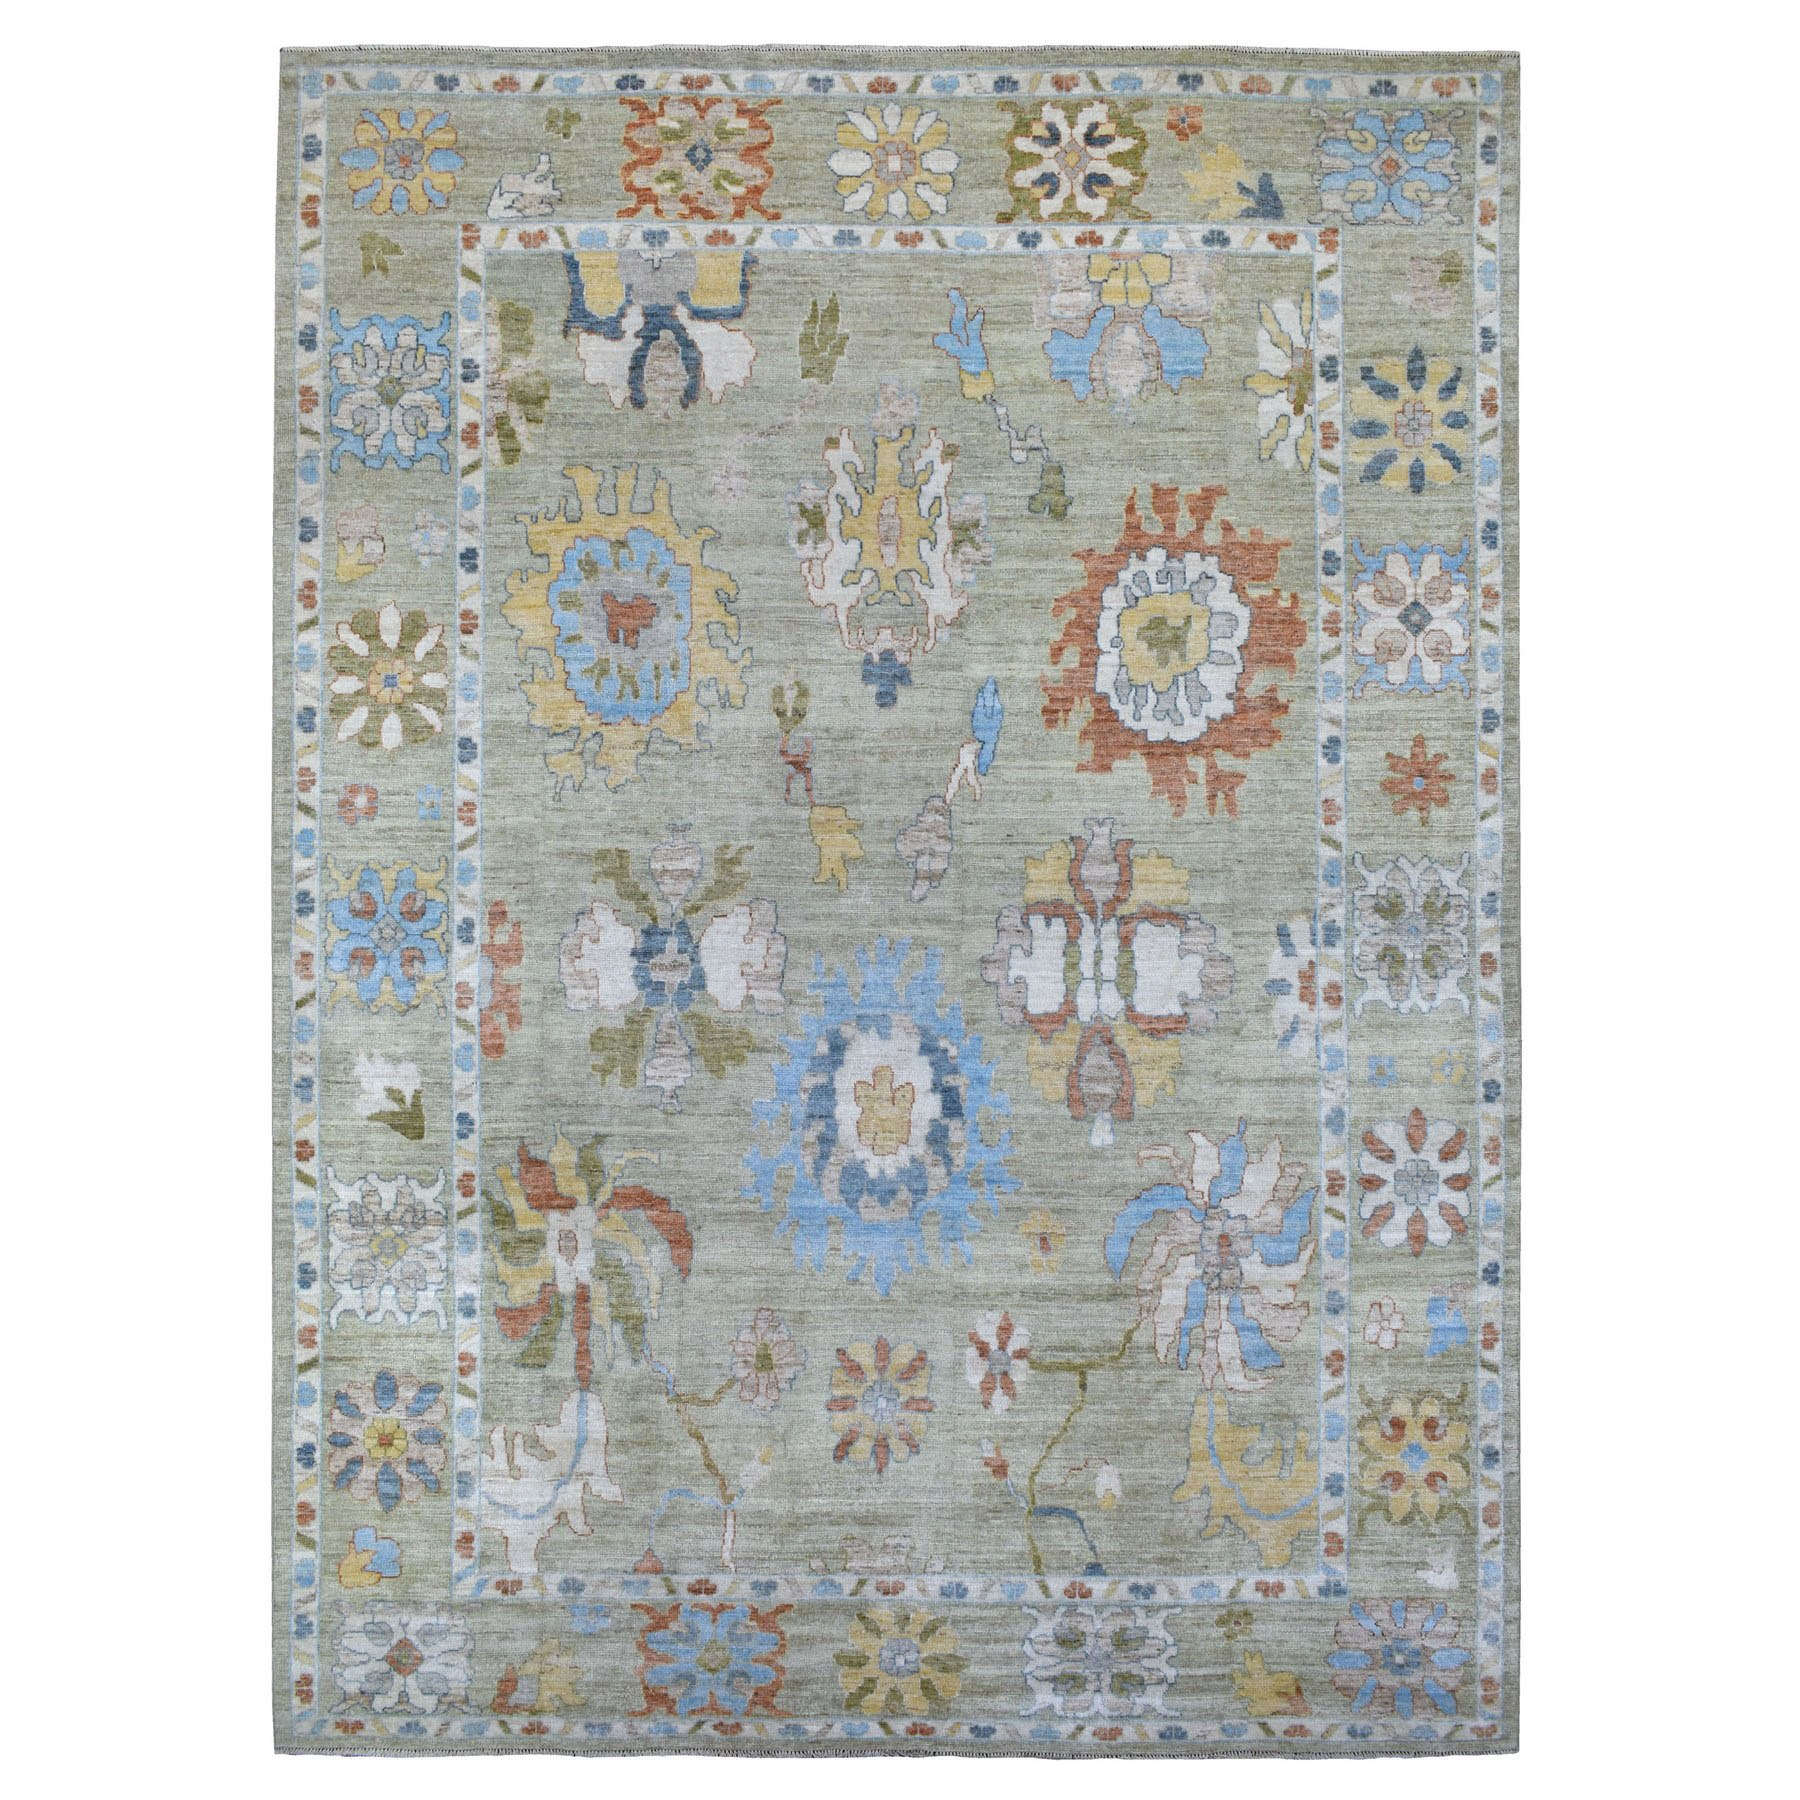 Oushak And Peshawar Rugs LUV606510